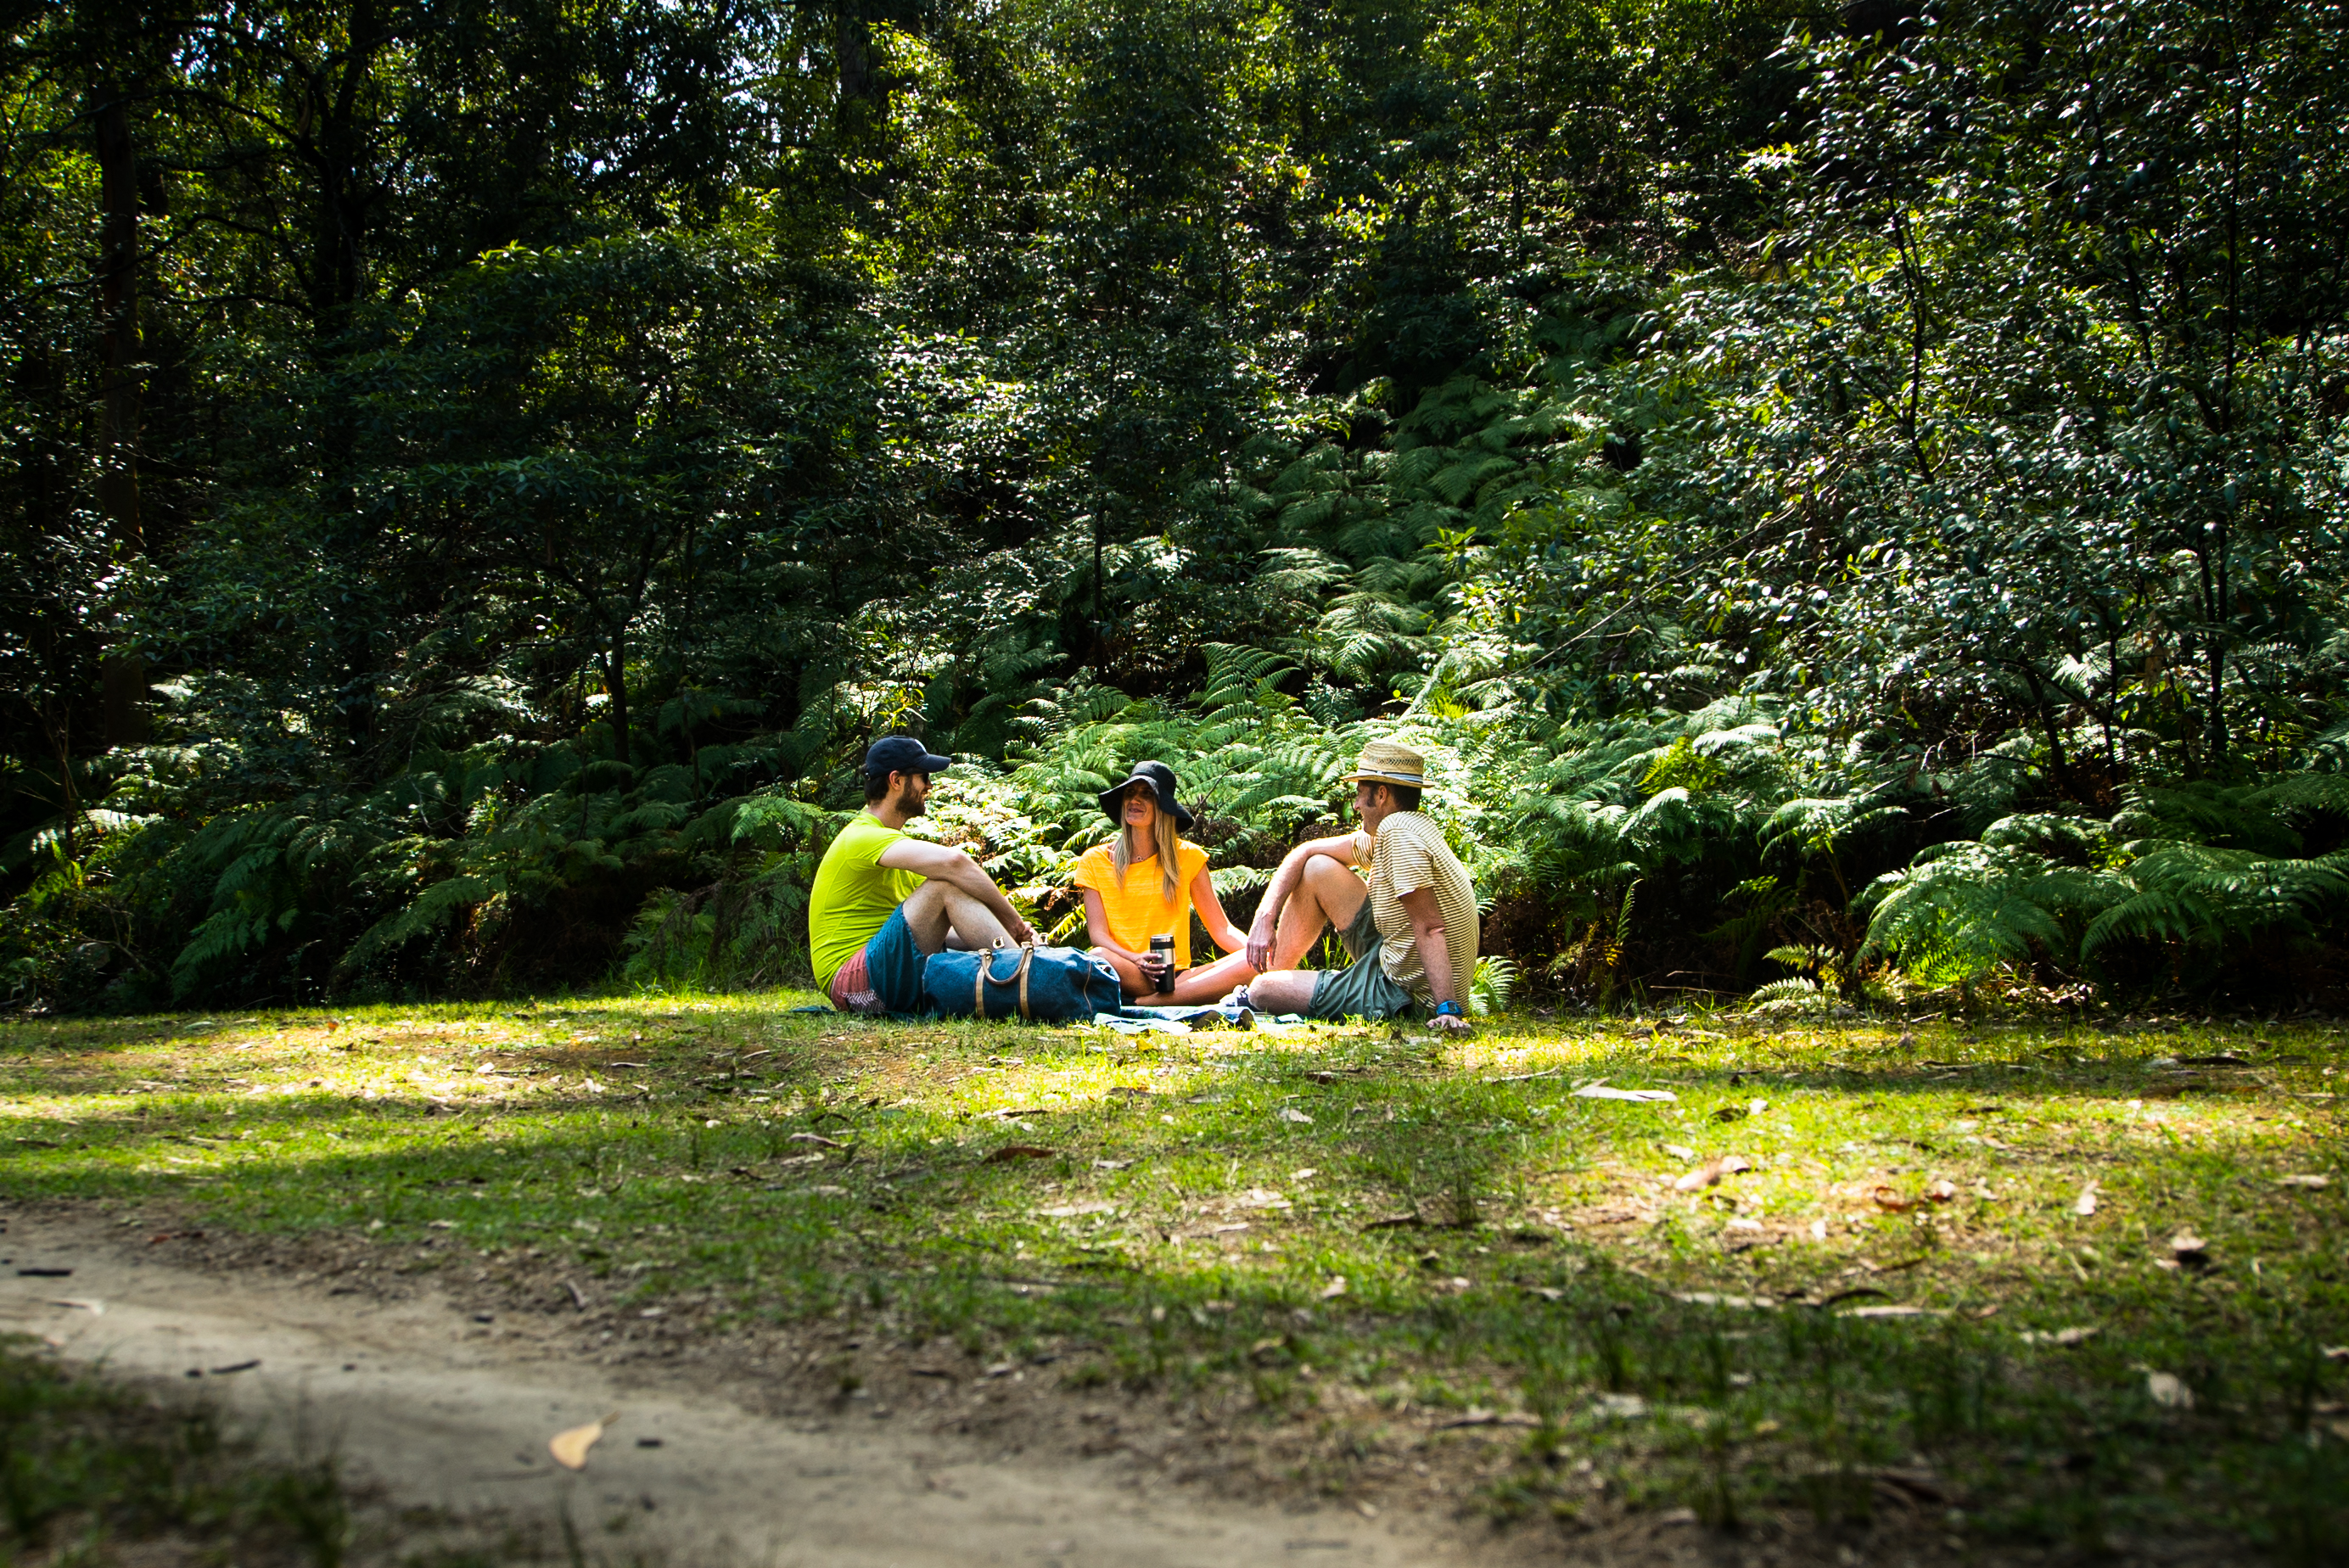 Three people having a picnic in a national park